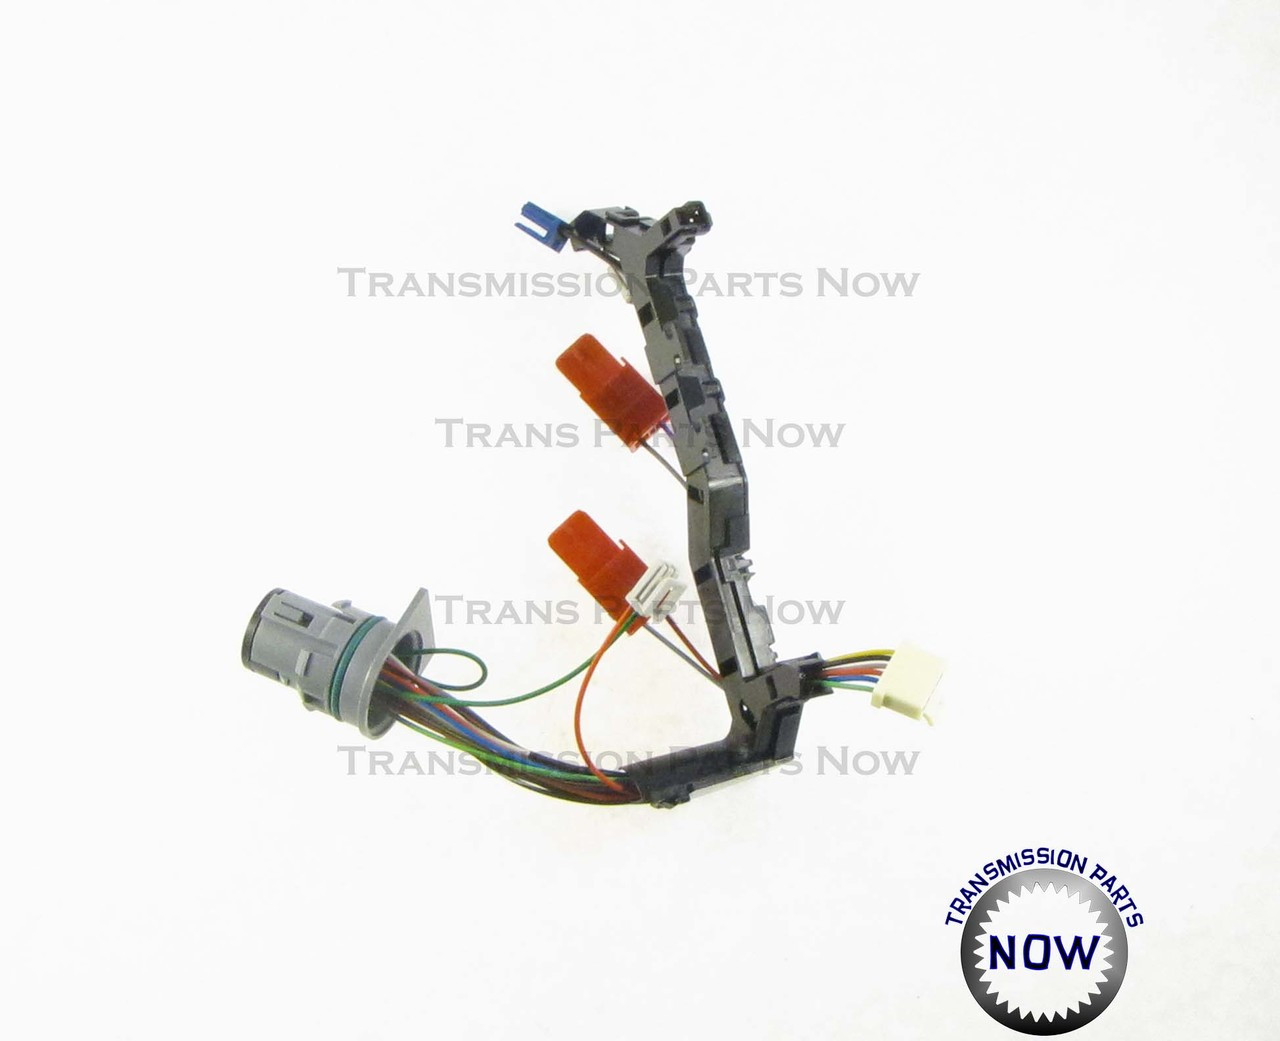 allison transmission wiring harness allison transmission wire harness made in the usa rostra  allison transmission wire harness made